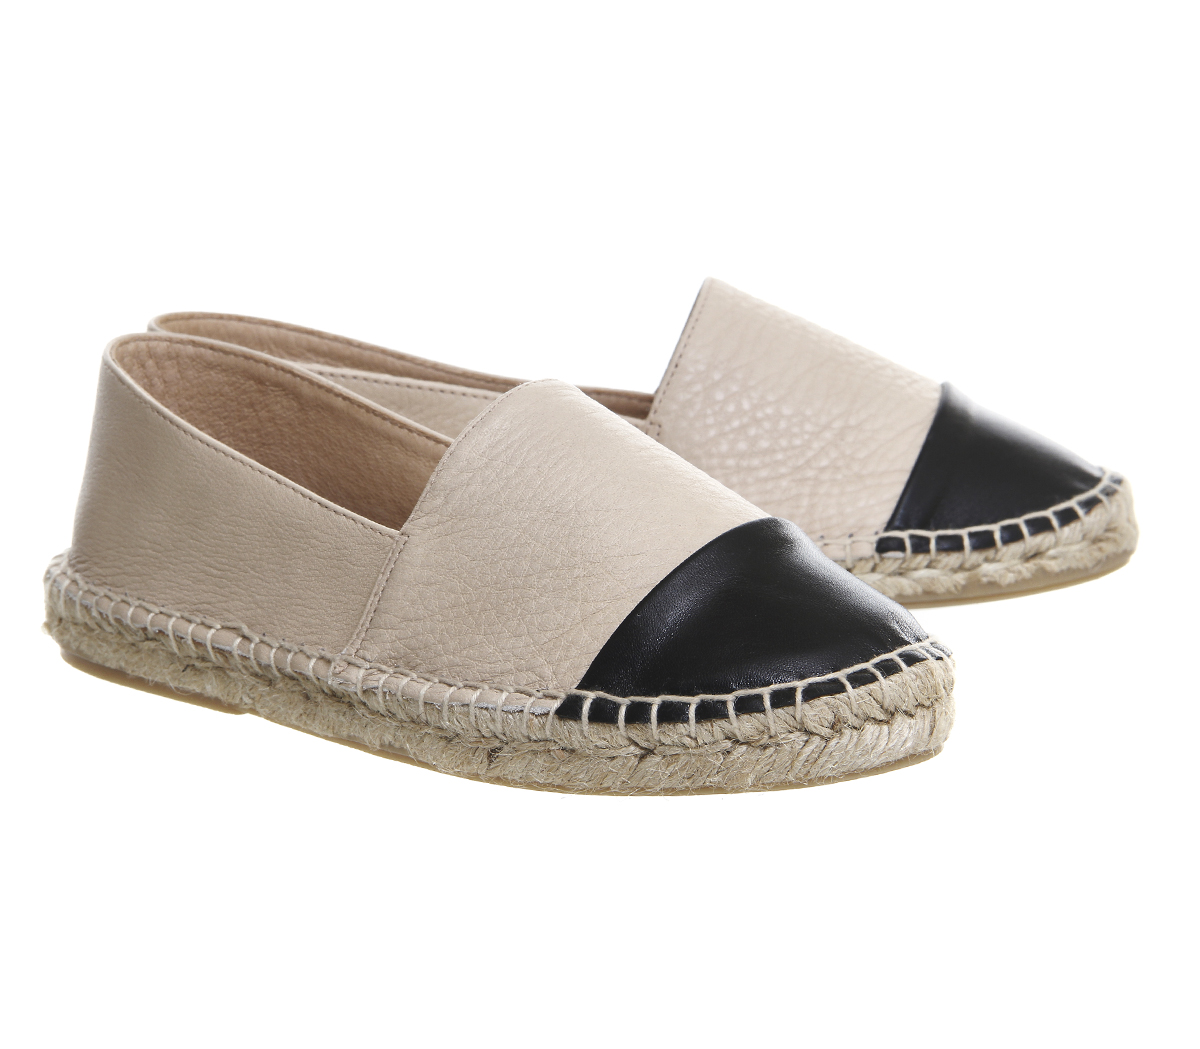 Office leather espadrilles